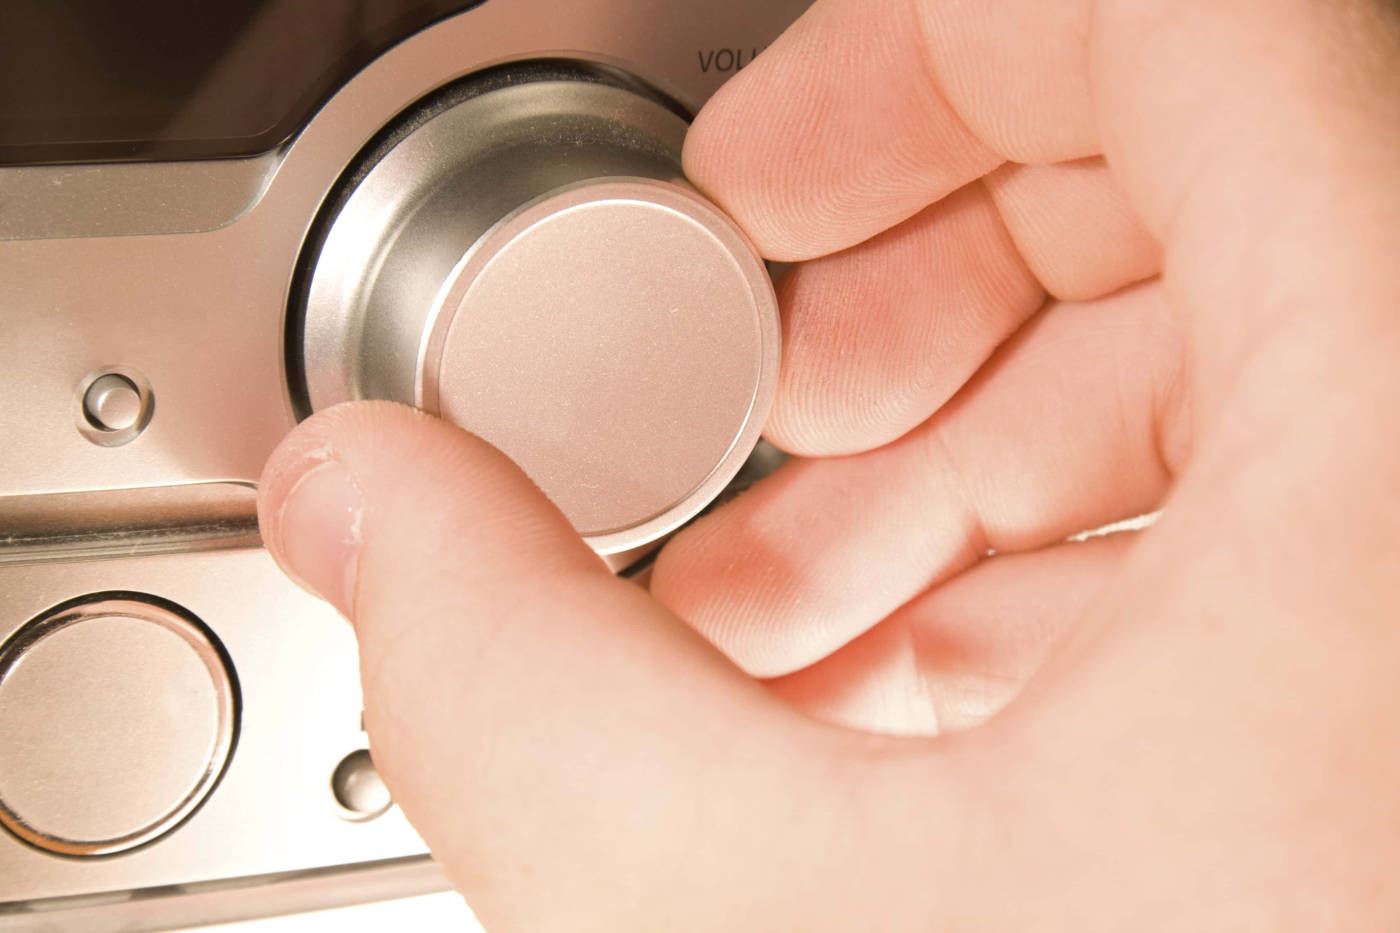 Hand adjusting the volume on a home stereo